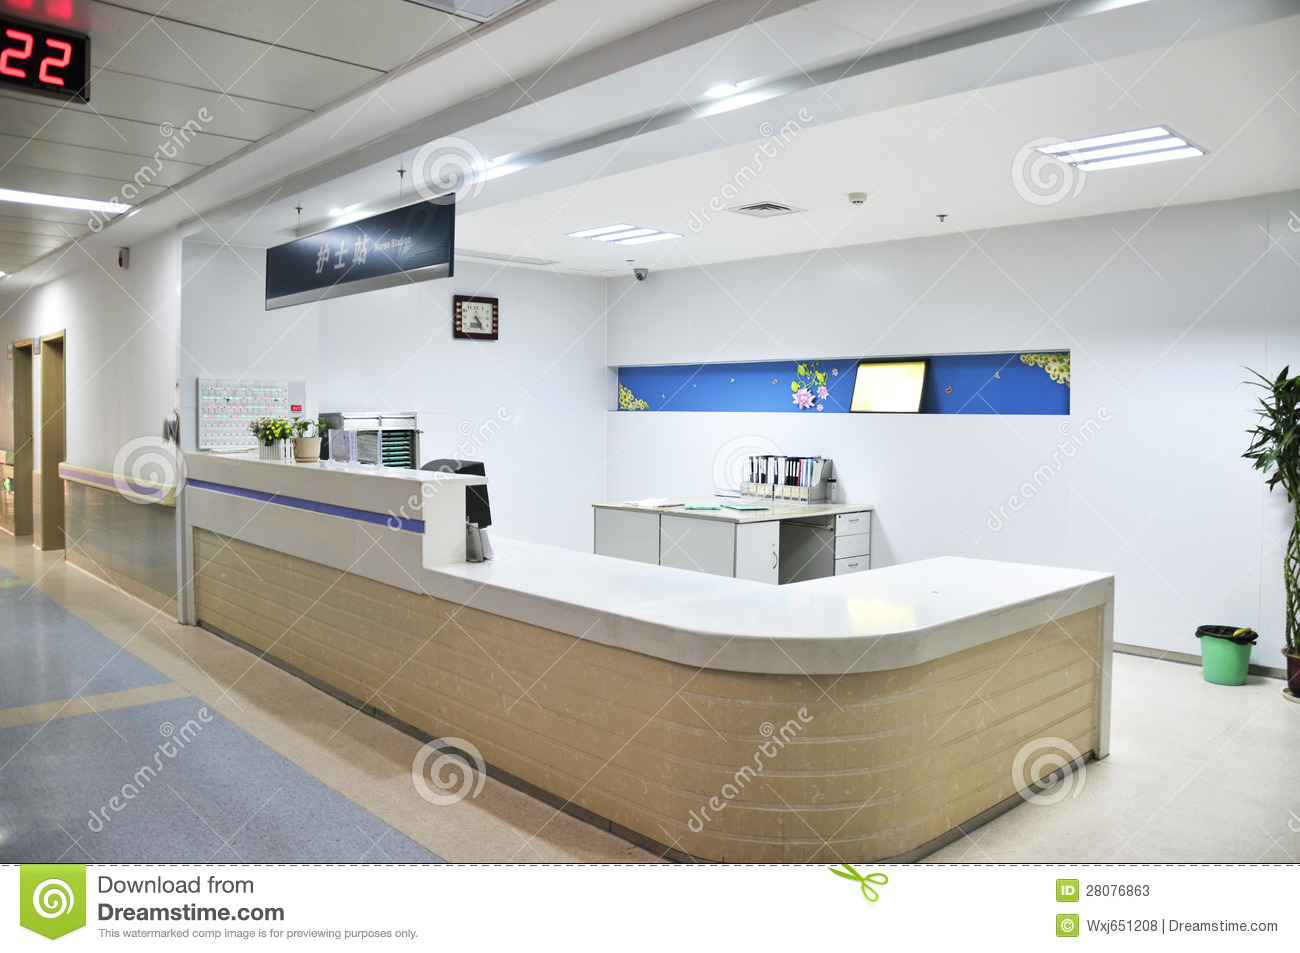 Nurse Station Stock Photos Image 28076863